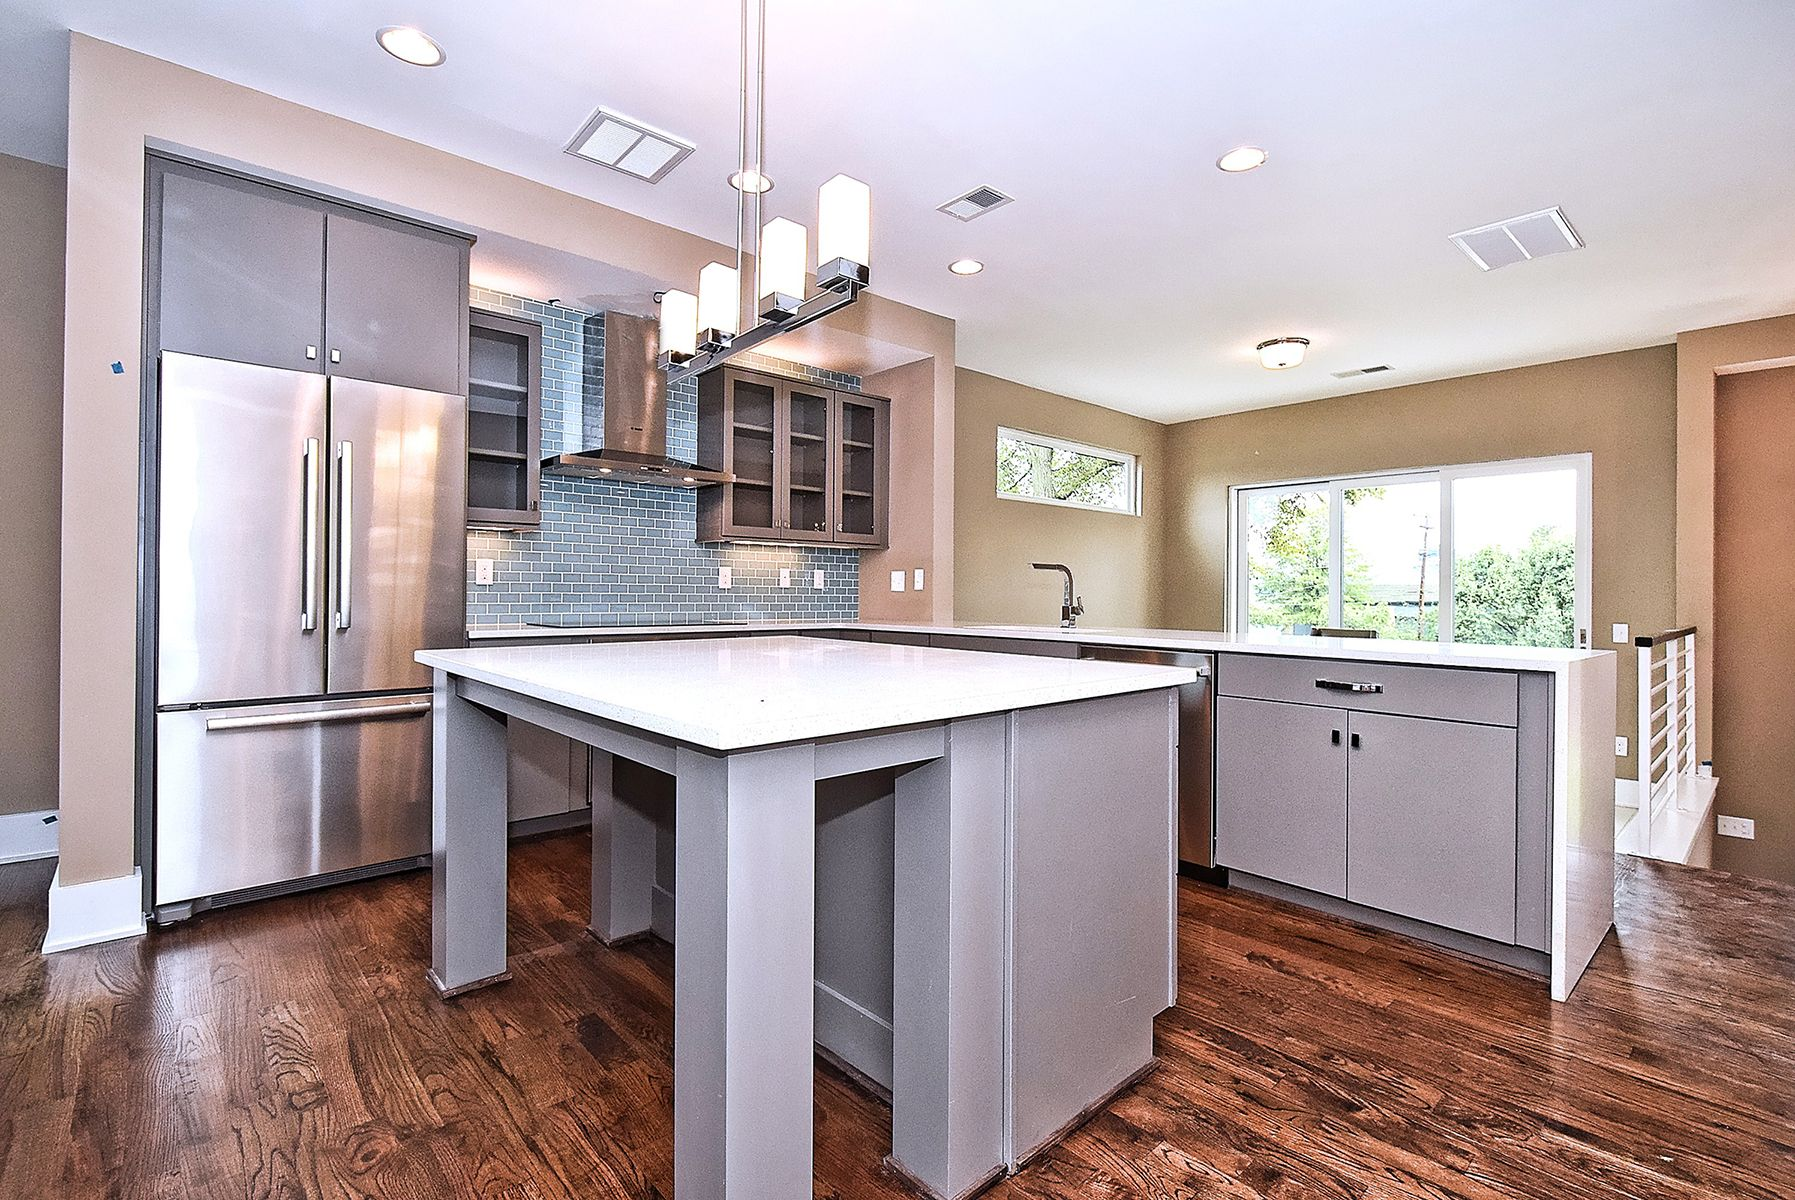 Kitchen Cabinets Charlotte Nc Gallery of our Work  Revolve Residential | Grey kitchen cabinets